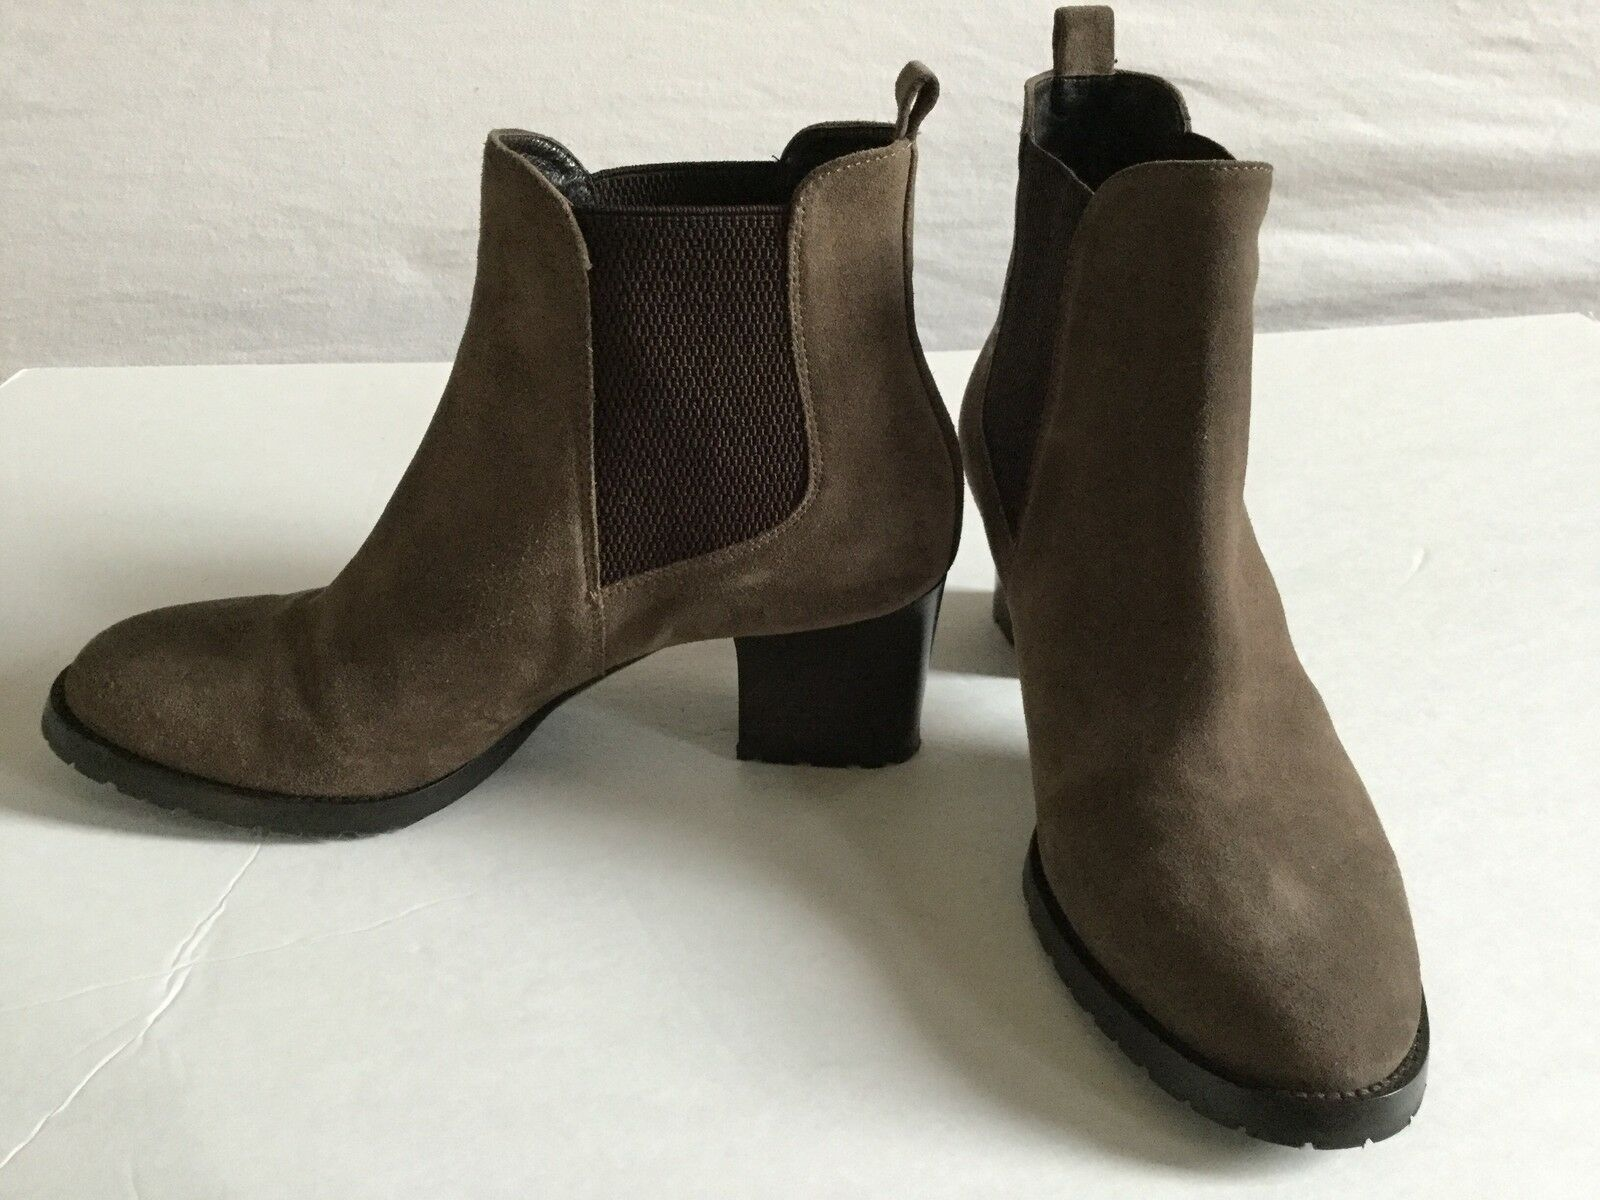 NEW Aquatalia Damenschuhe Fairly Chelsea Braun Suede Marvin Boot by Marvin Suede K 8.5 - Stunning e412c1